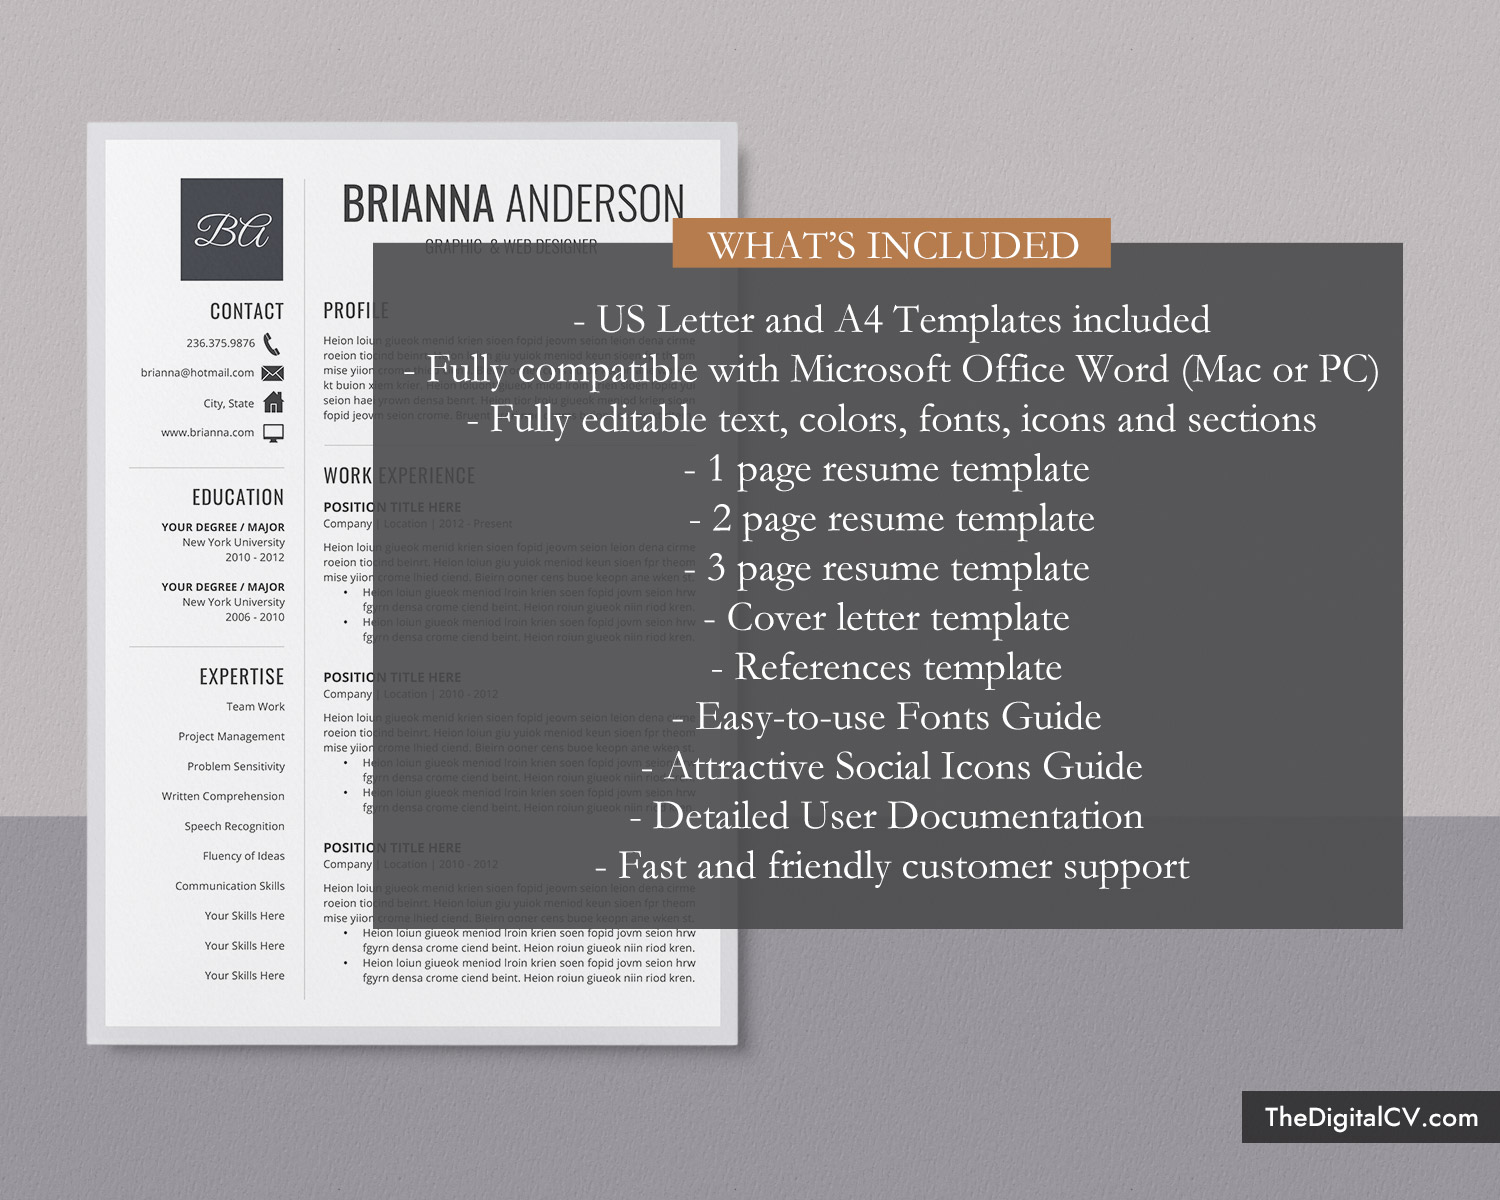 Editable Resume Template For Word 1 3 Page Job Resume Template Simple Cv Template Cover Letter Modern Resume Creative Resume Professional